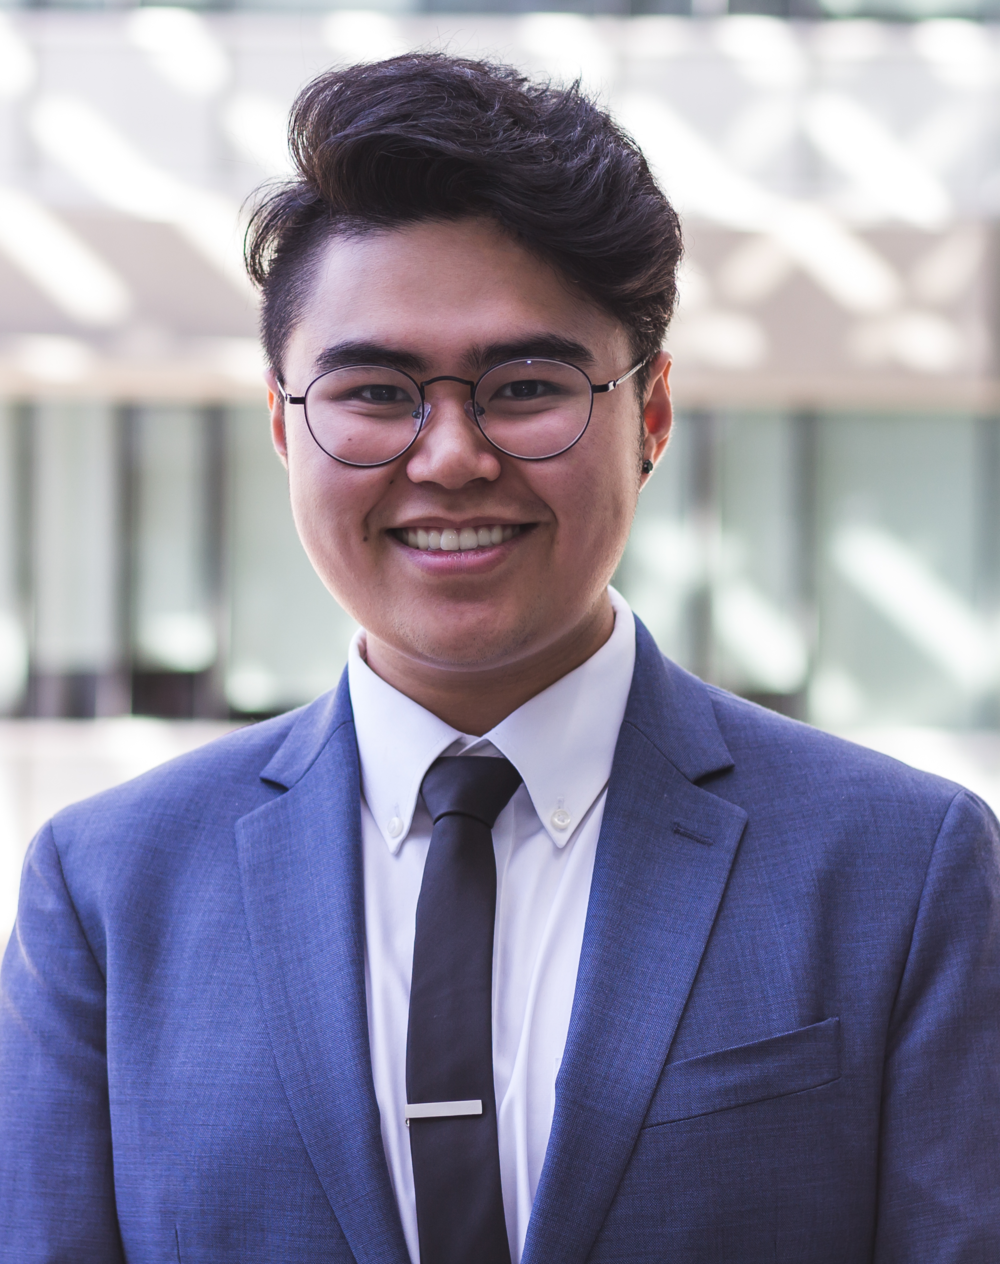 Brian Vo  Marketing Coordinator   Year: 2  Concentration: Marketing & MIS   What are you excited to do in your term?  I'm excited to join the BASS family and really see the inner-workings of the organization! I'm also looking forward to see the growth of BASS programs through unique marketing strategies.   What emoji best describes you?  🤠 describes me because I say y'all a lot and I'm all about that yeehaw life.